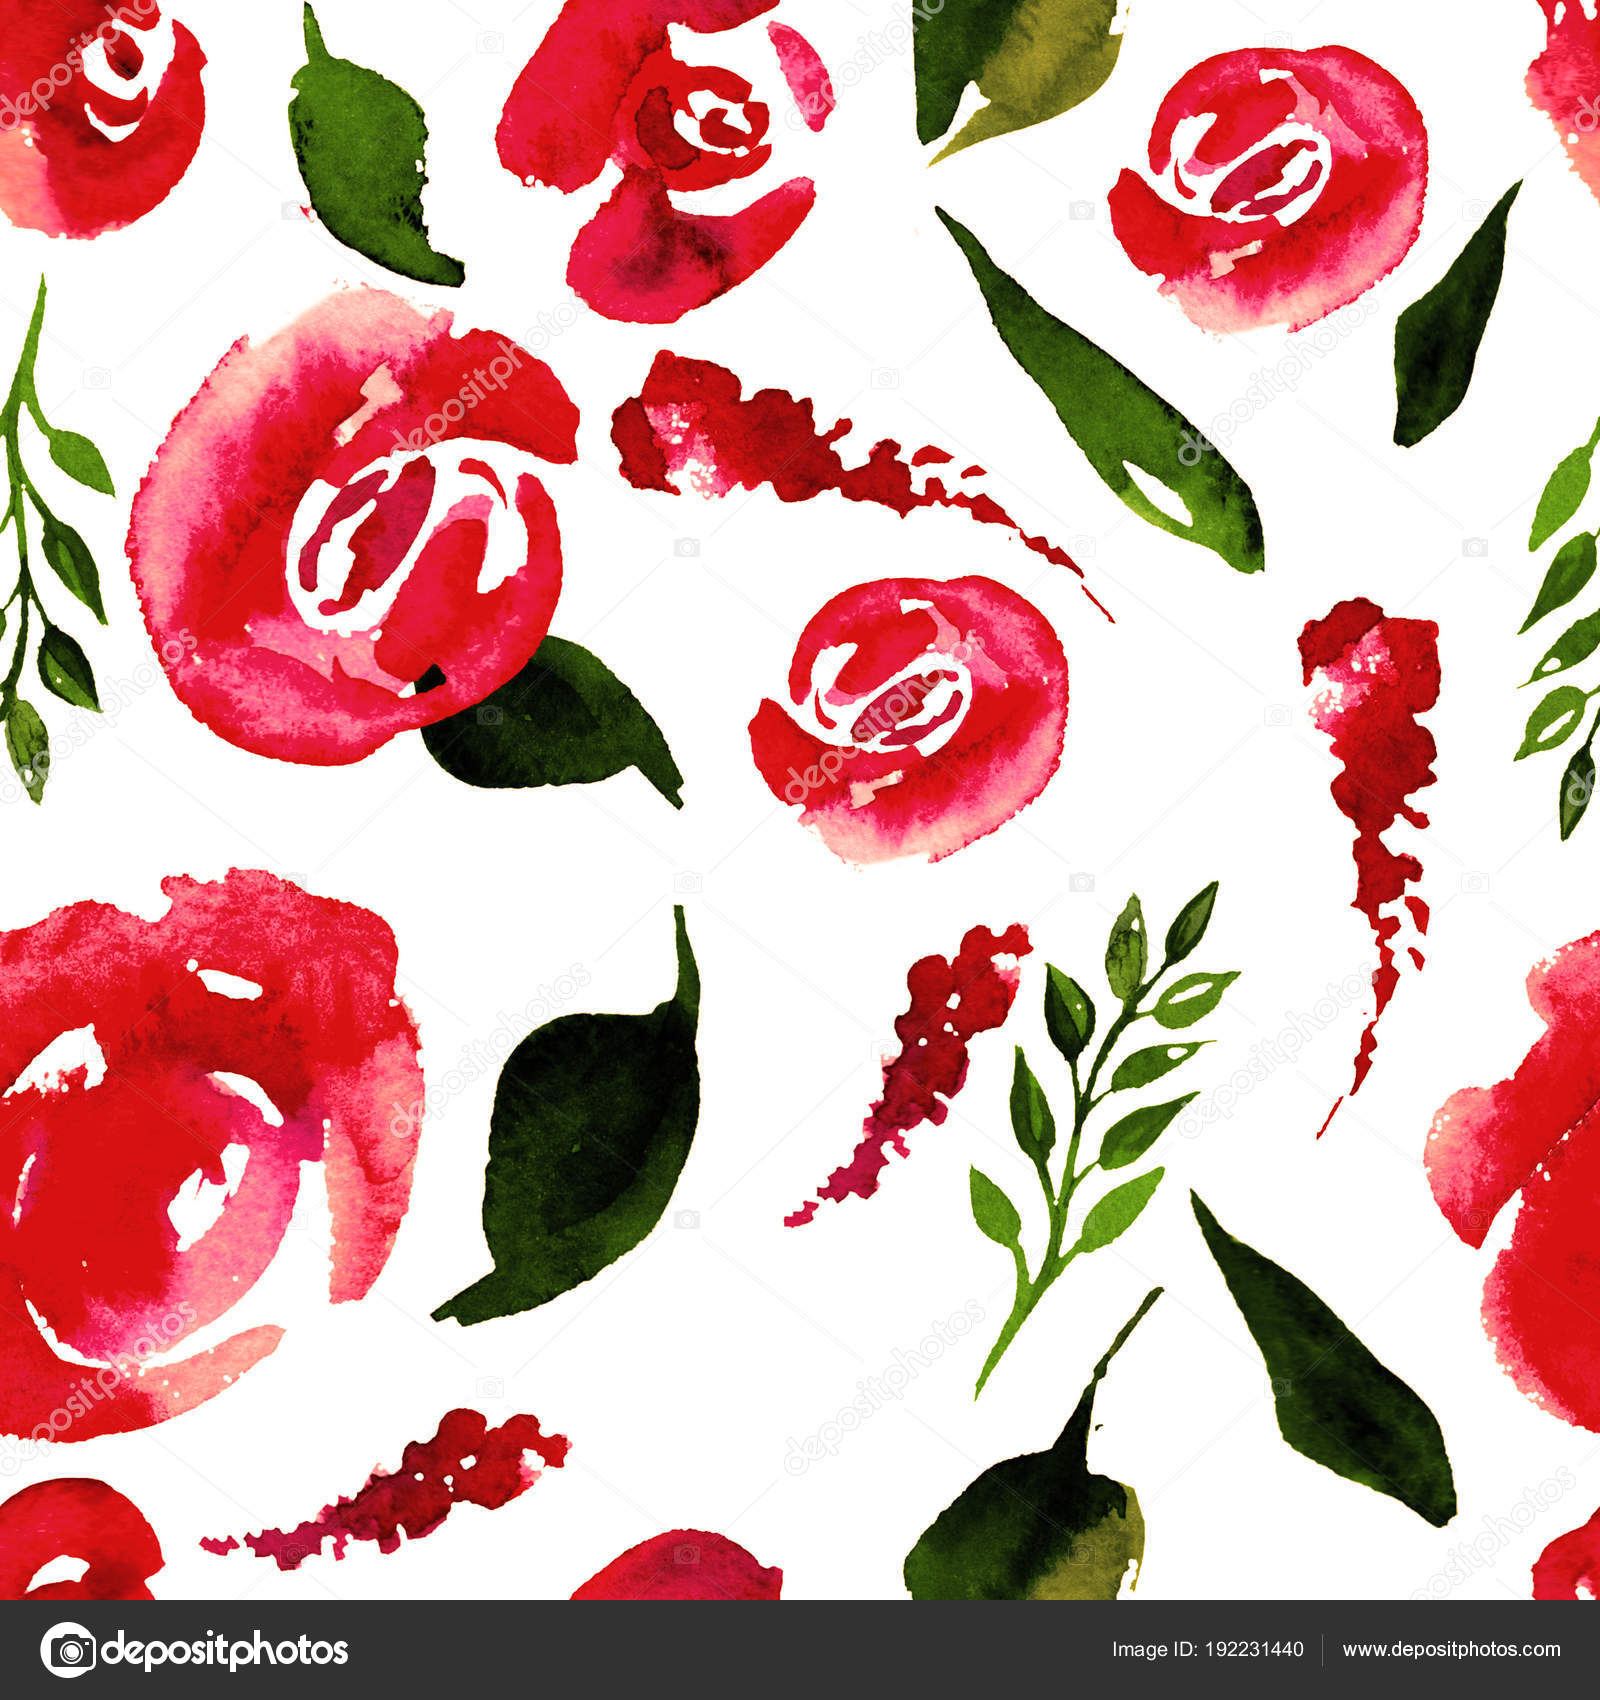 Watercolor Floral Repeat Pattern. Can be used as a Print for Fabric ...